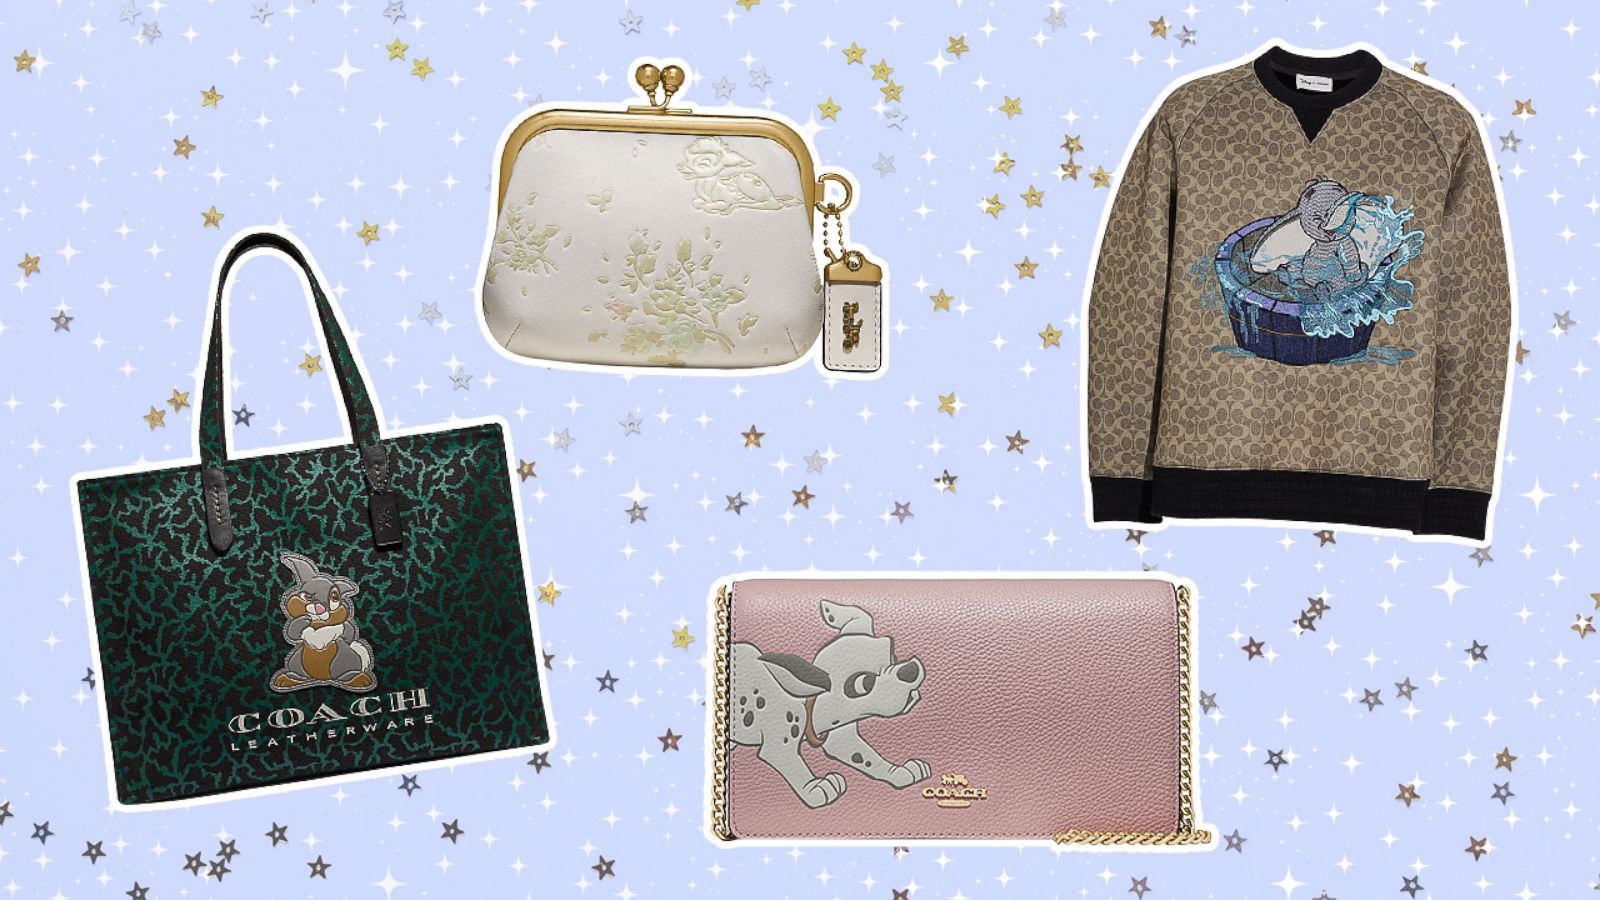 Dumbo Dalmatians Oh My Disney S New Collection With Coach Is Magic Gma